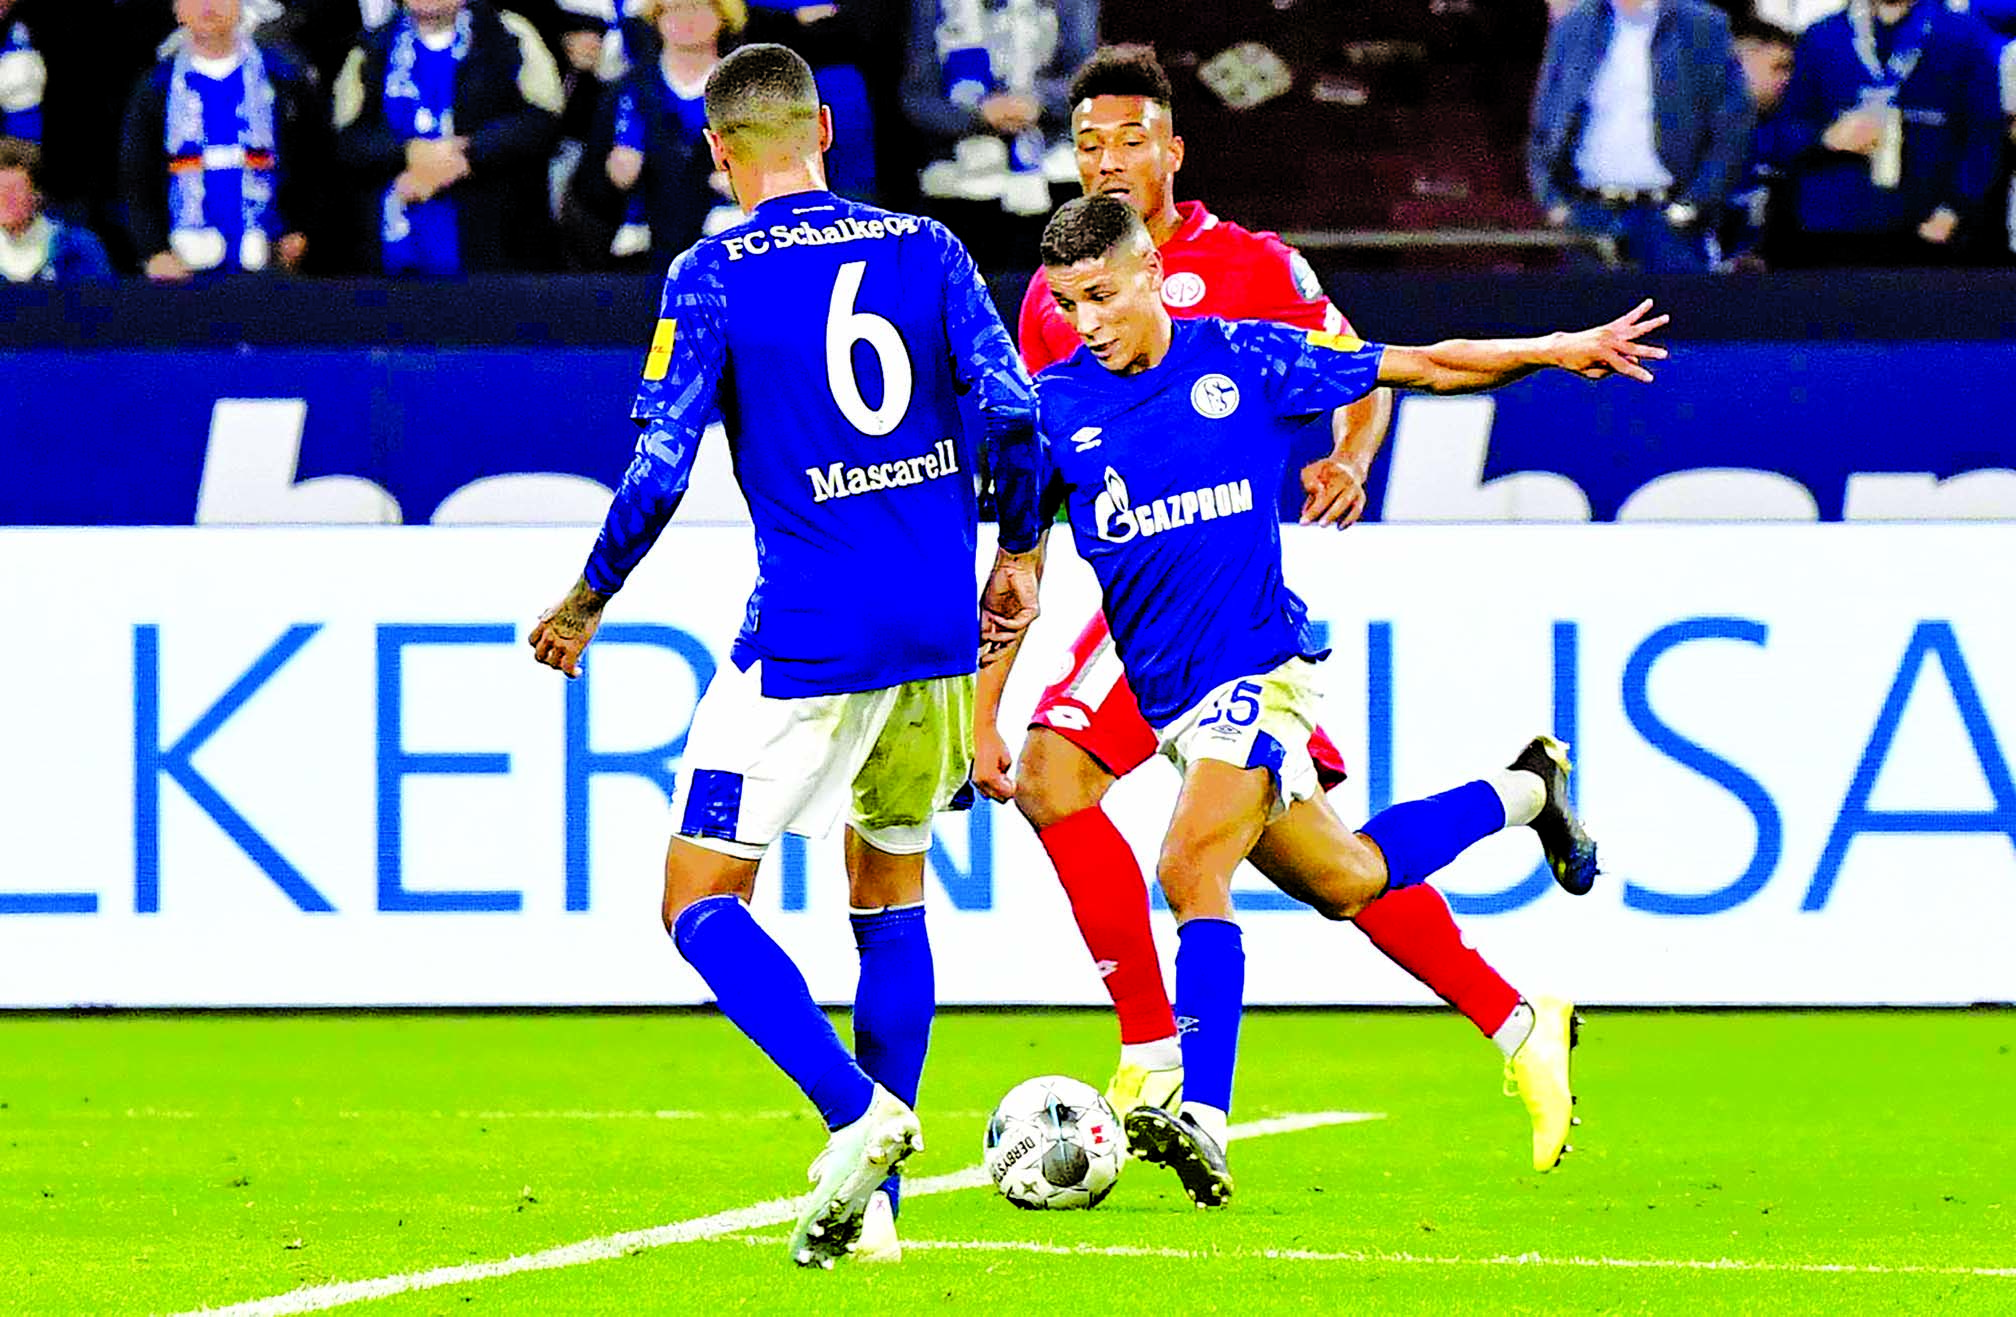 Schalke edge Mainz 2-1 in Bundesliga standings